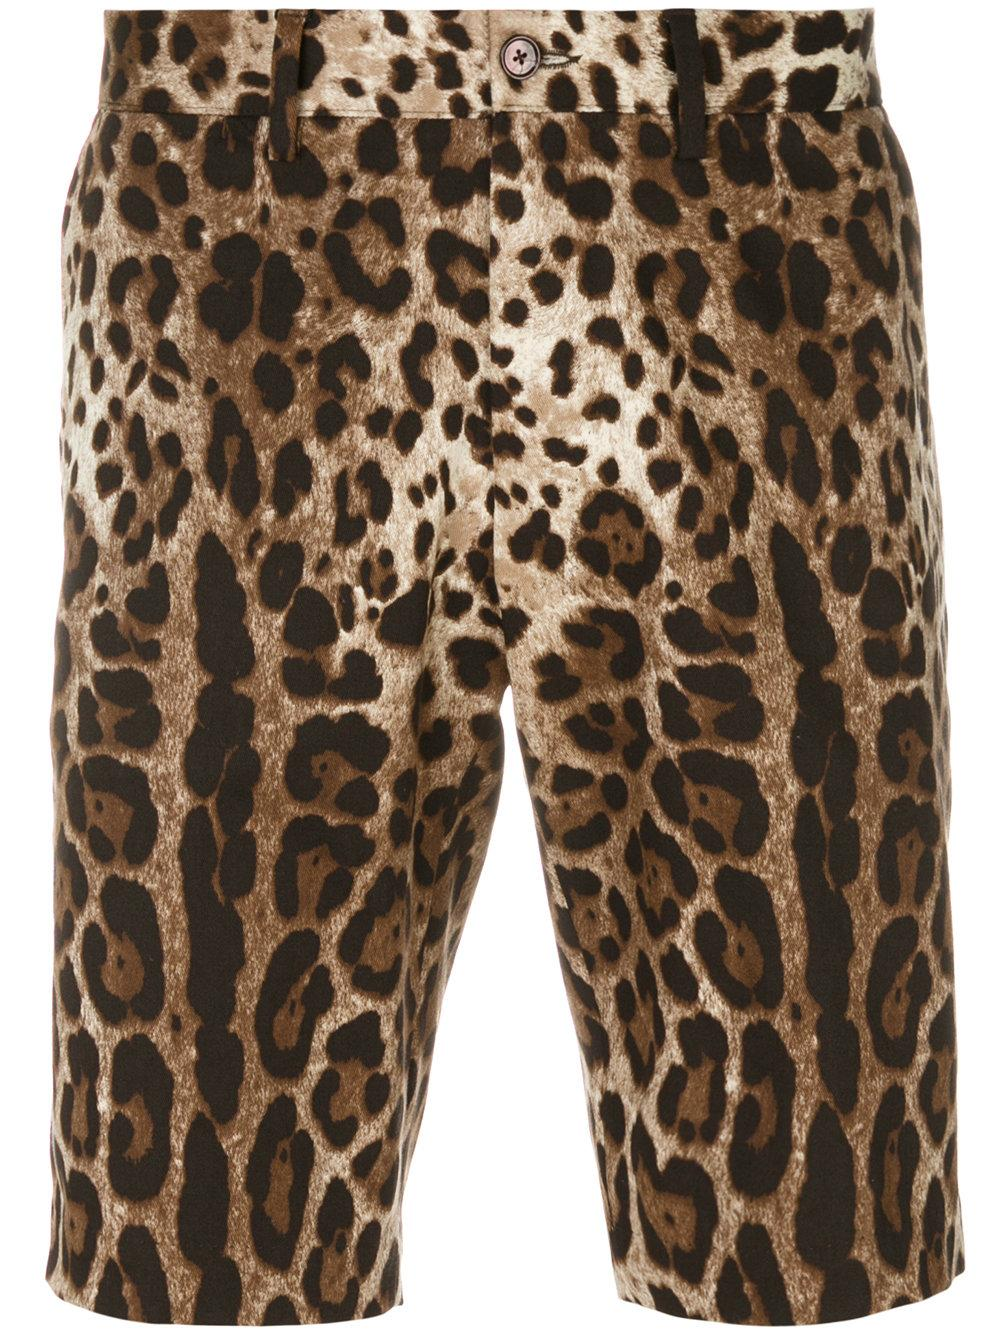 Find animal print shorts at ShopStyle. Shop the latest collection of animal print shorts from the most popular stores - all in one place. Men Skip Men Menu Go back to Accessories Menu Beauty Leopard Print Shorts Beach Print Shorts Animal Print Shorts + Save this search Showing 70 animal print shorts Pre.